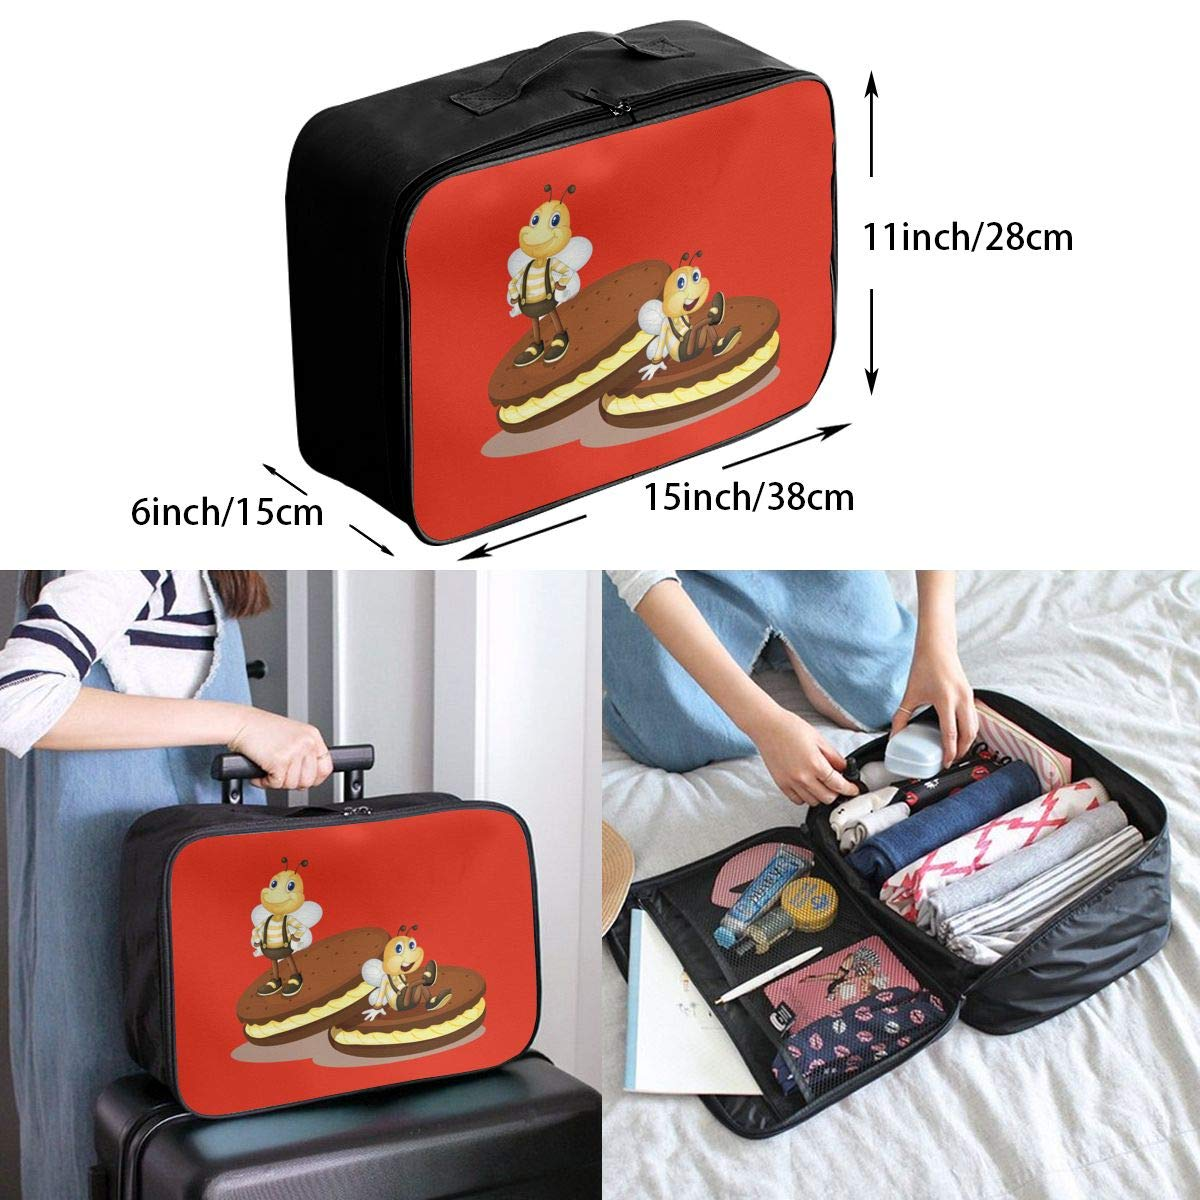 Travel Luggage Duffle Bag Lightweight Portable Handbag Biscuits Cookies Large Capacity Waterproof Foldable Storage Tote